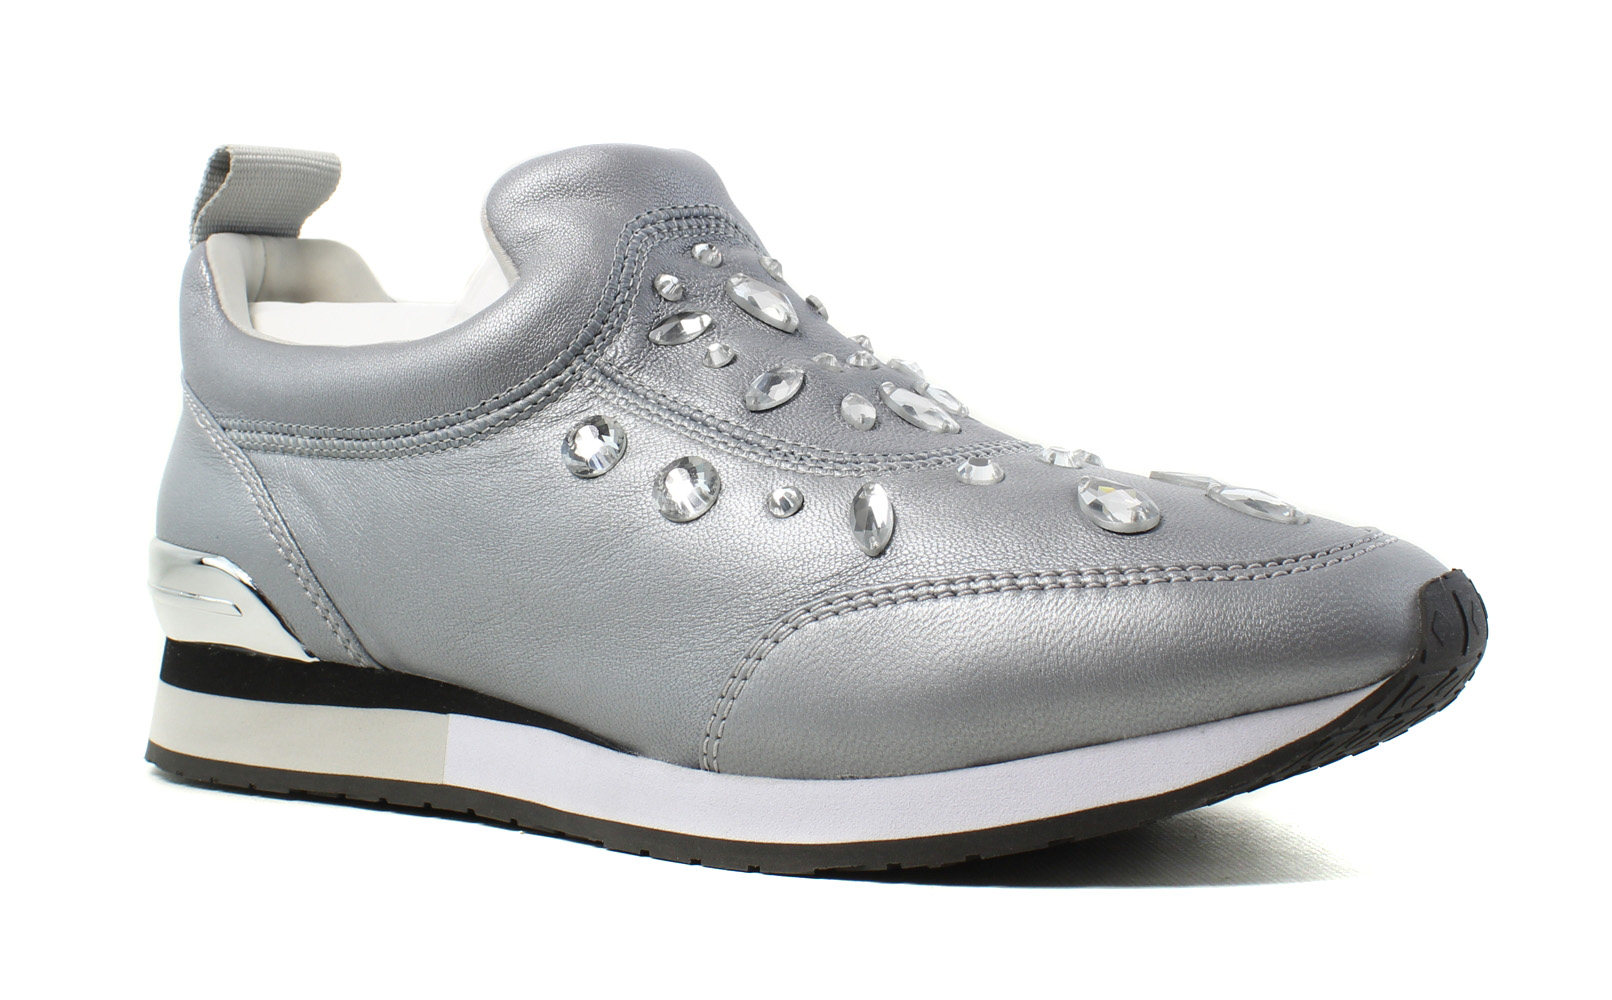 Tory Burch Womens  Silver Fashion Athletic Shoes Size 9 New